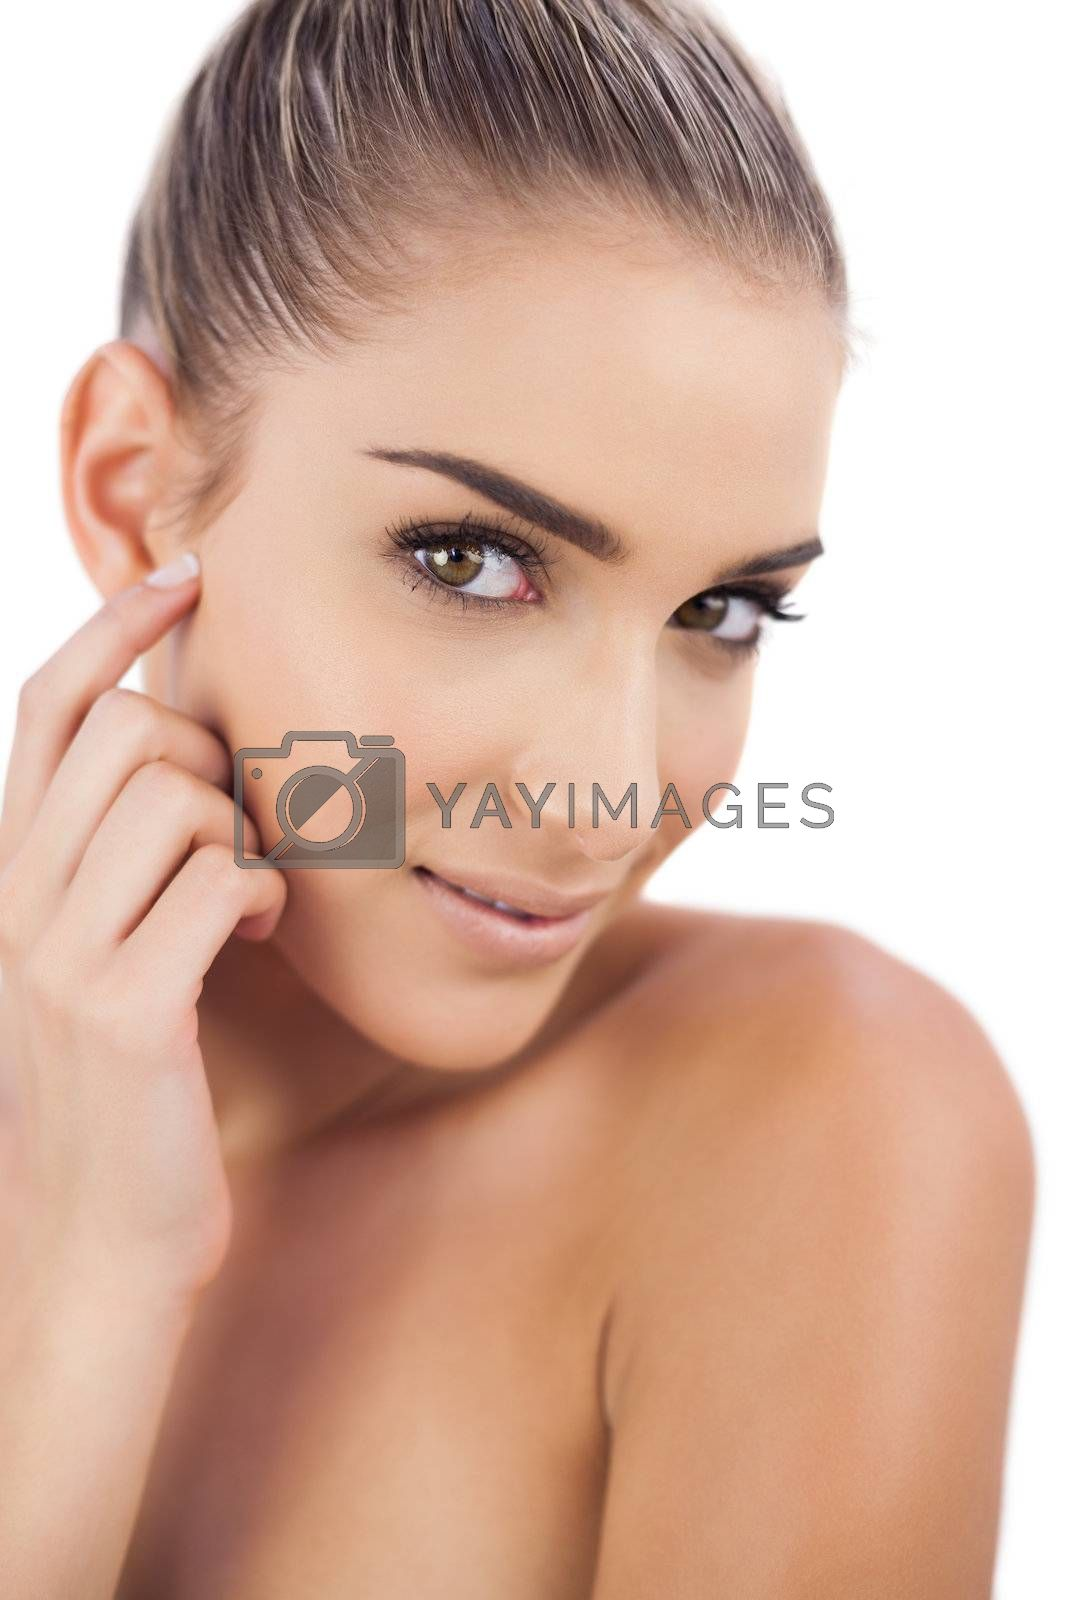 Lovely woman looking at camera by Wavebreakmedia